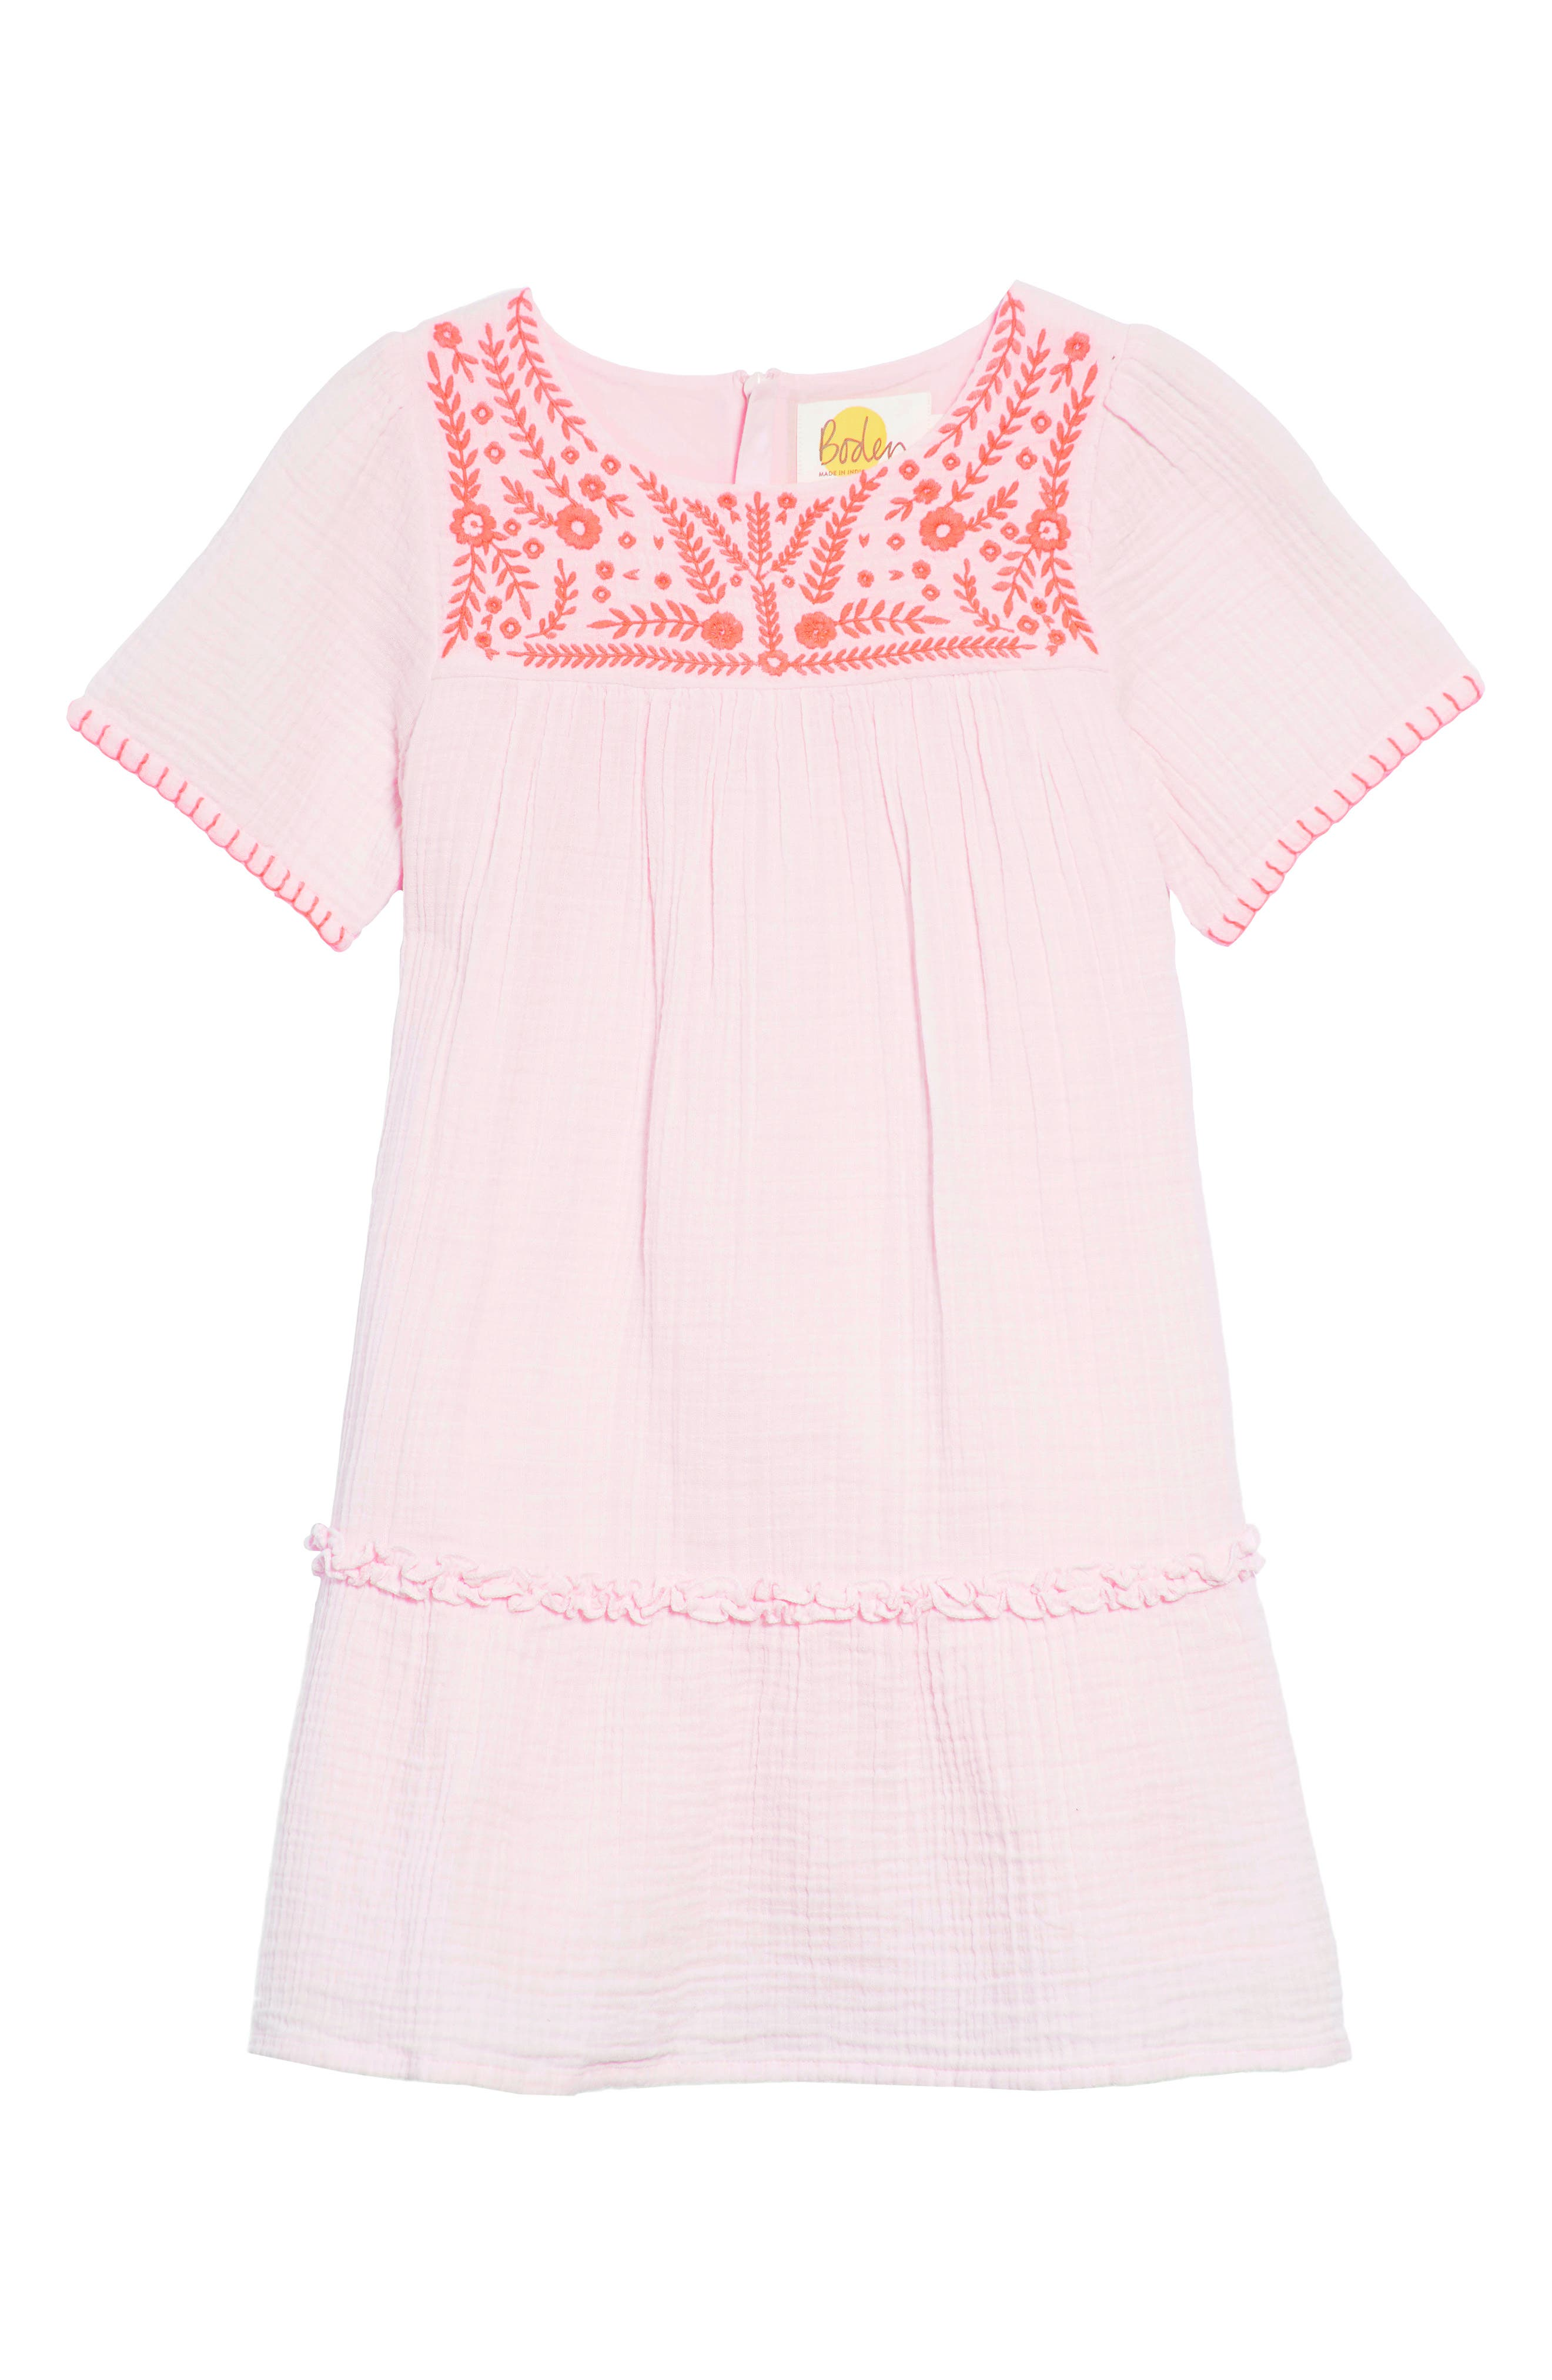 Embroidered Woven Caftan Dress,                             Main thumbnail 1, color,                             Pink Mist